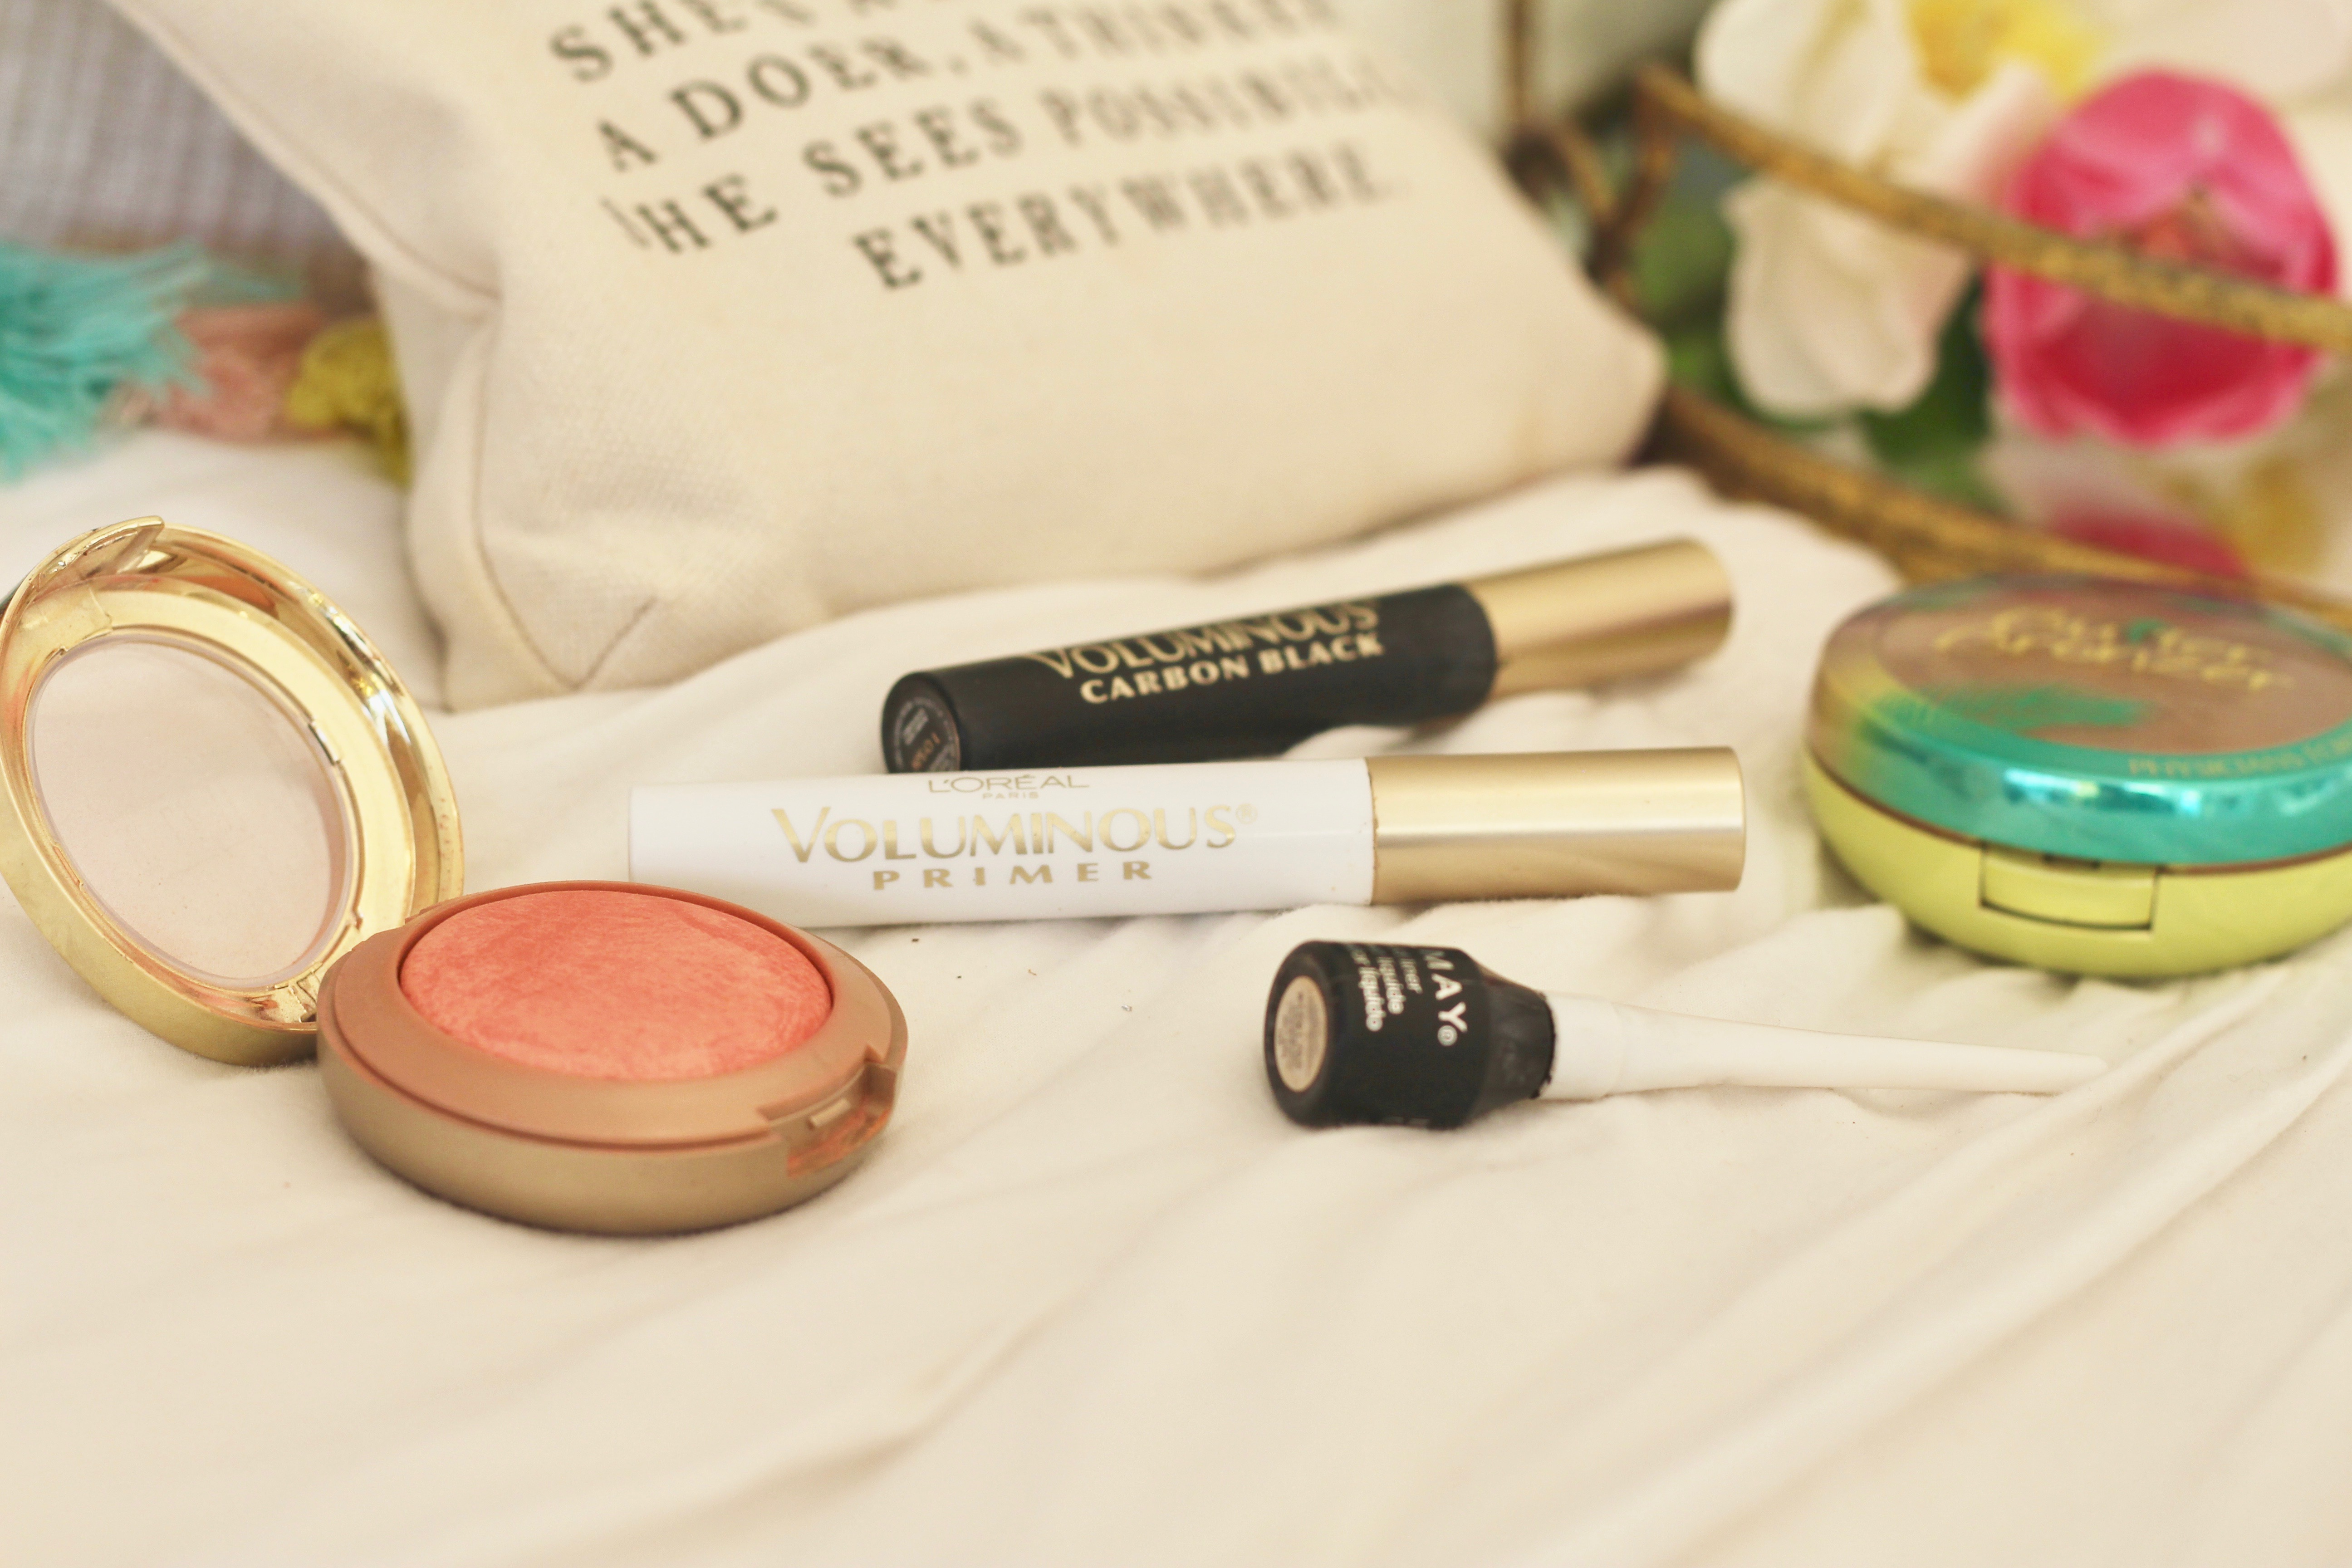 Forum on this topic: The Drugstore Beauty Products I Swear By , the-drugstore-beauty-products-i-swear-by/